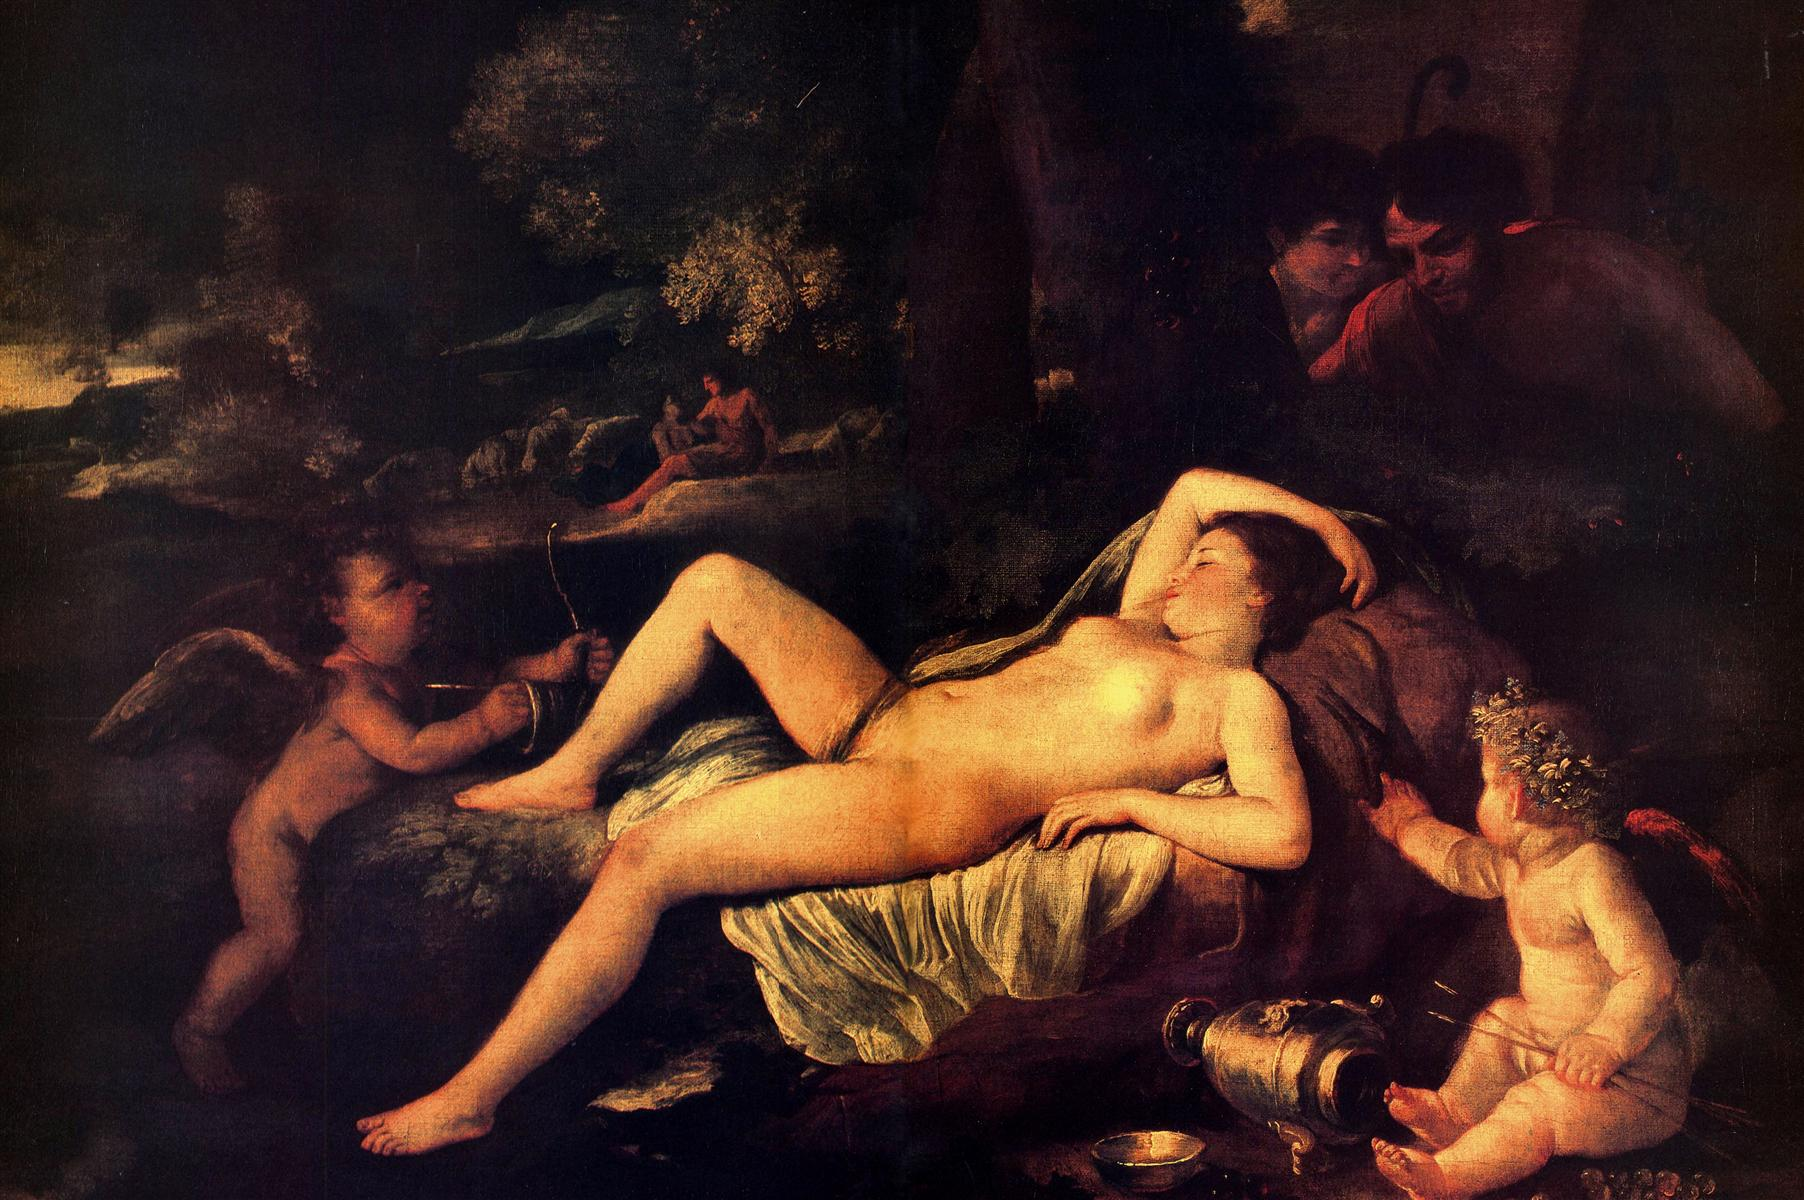 http://uploads8.wikipaintings.org/images/nicolas-poussin/sleeping-venus-and-cupid.jpg!HD.jpg